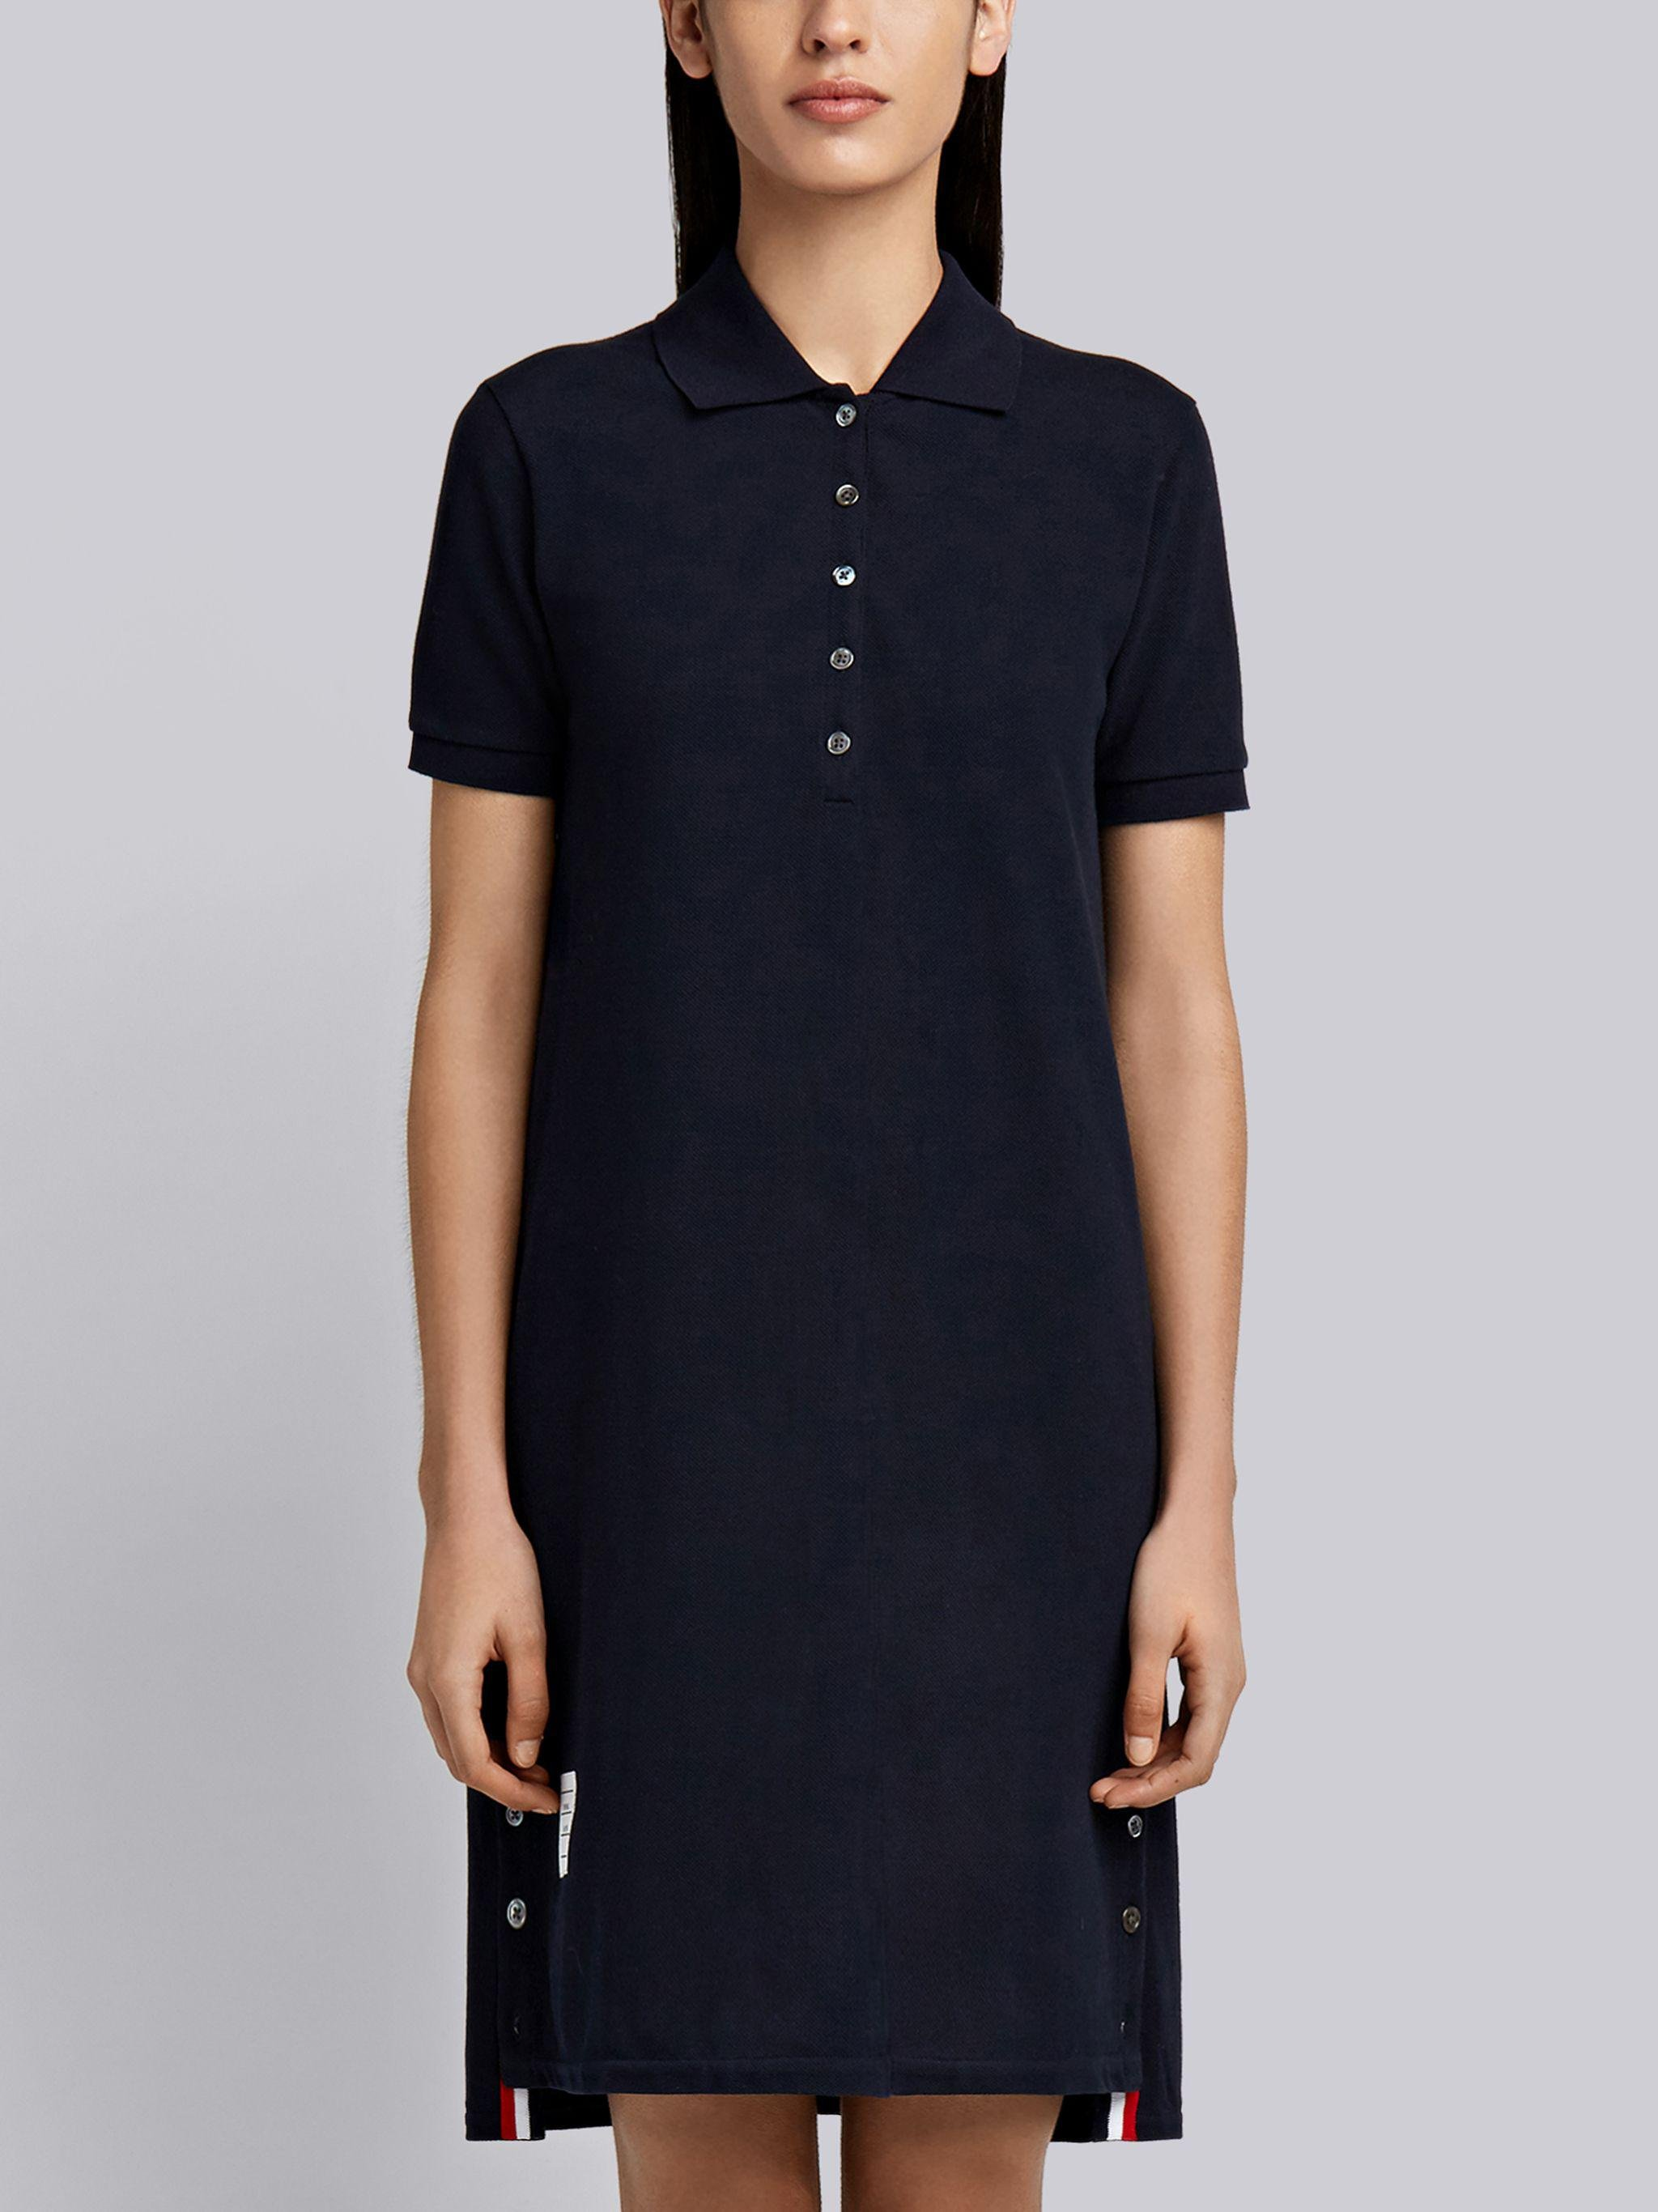 Navy Stripe Cotton Pique Fitted A-line Short Sleeve Polo Shirtdress